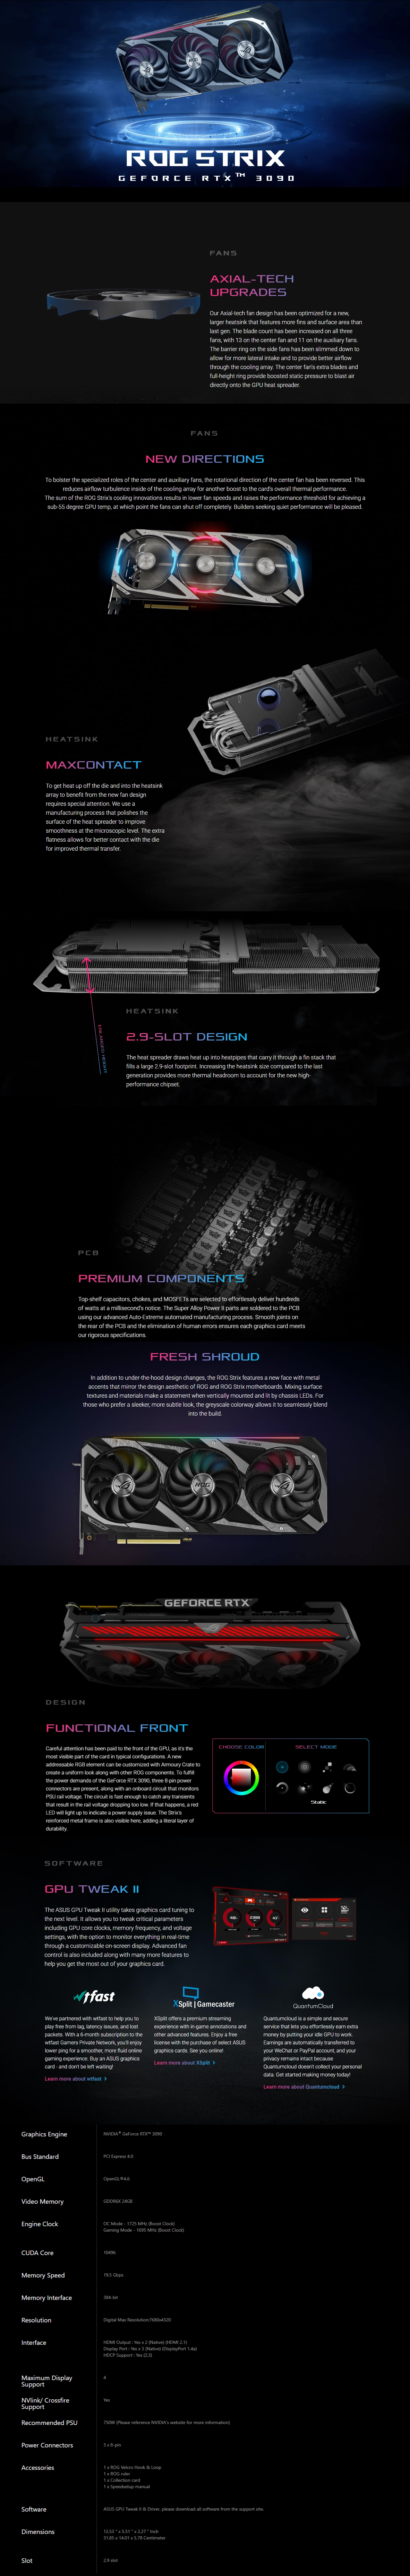 A large marketing image providing additional information about the product ASUS GeForce RTX 3090 ROG Strix Gaming 24GB GDDR6X - Additional alt info not provided